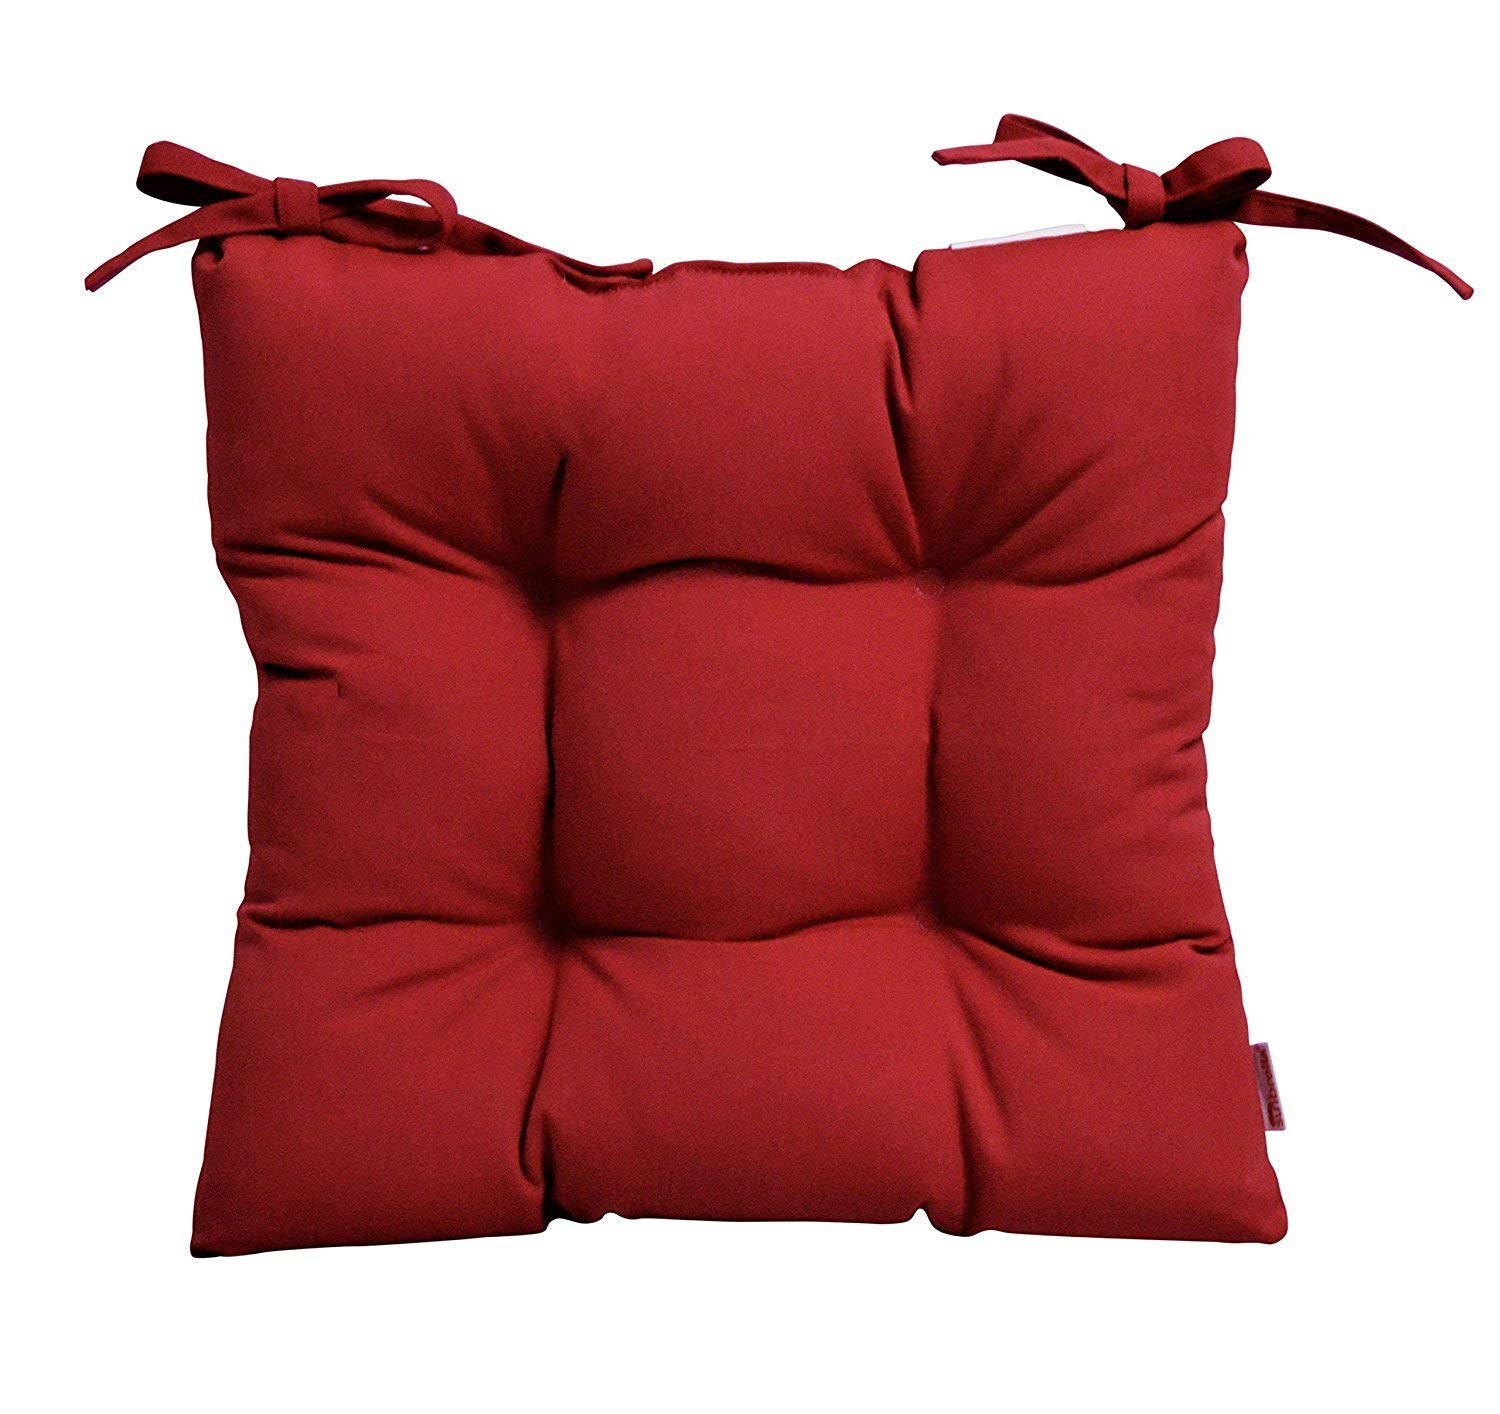 """RSH Décor Indoor/Outdoor Sunbrella Canvas Jockey Red Tufted Seat Cushion with Ties for Dining/Patio Chairs - Choose Size (16"""" x 16"""")"""